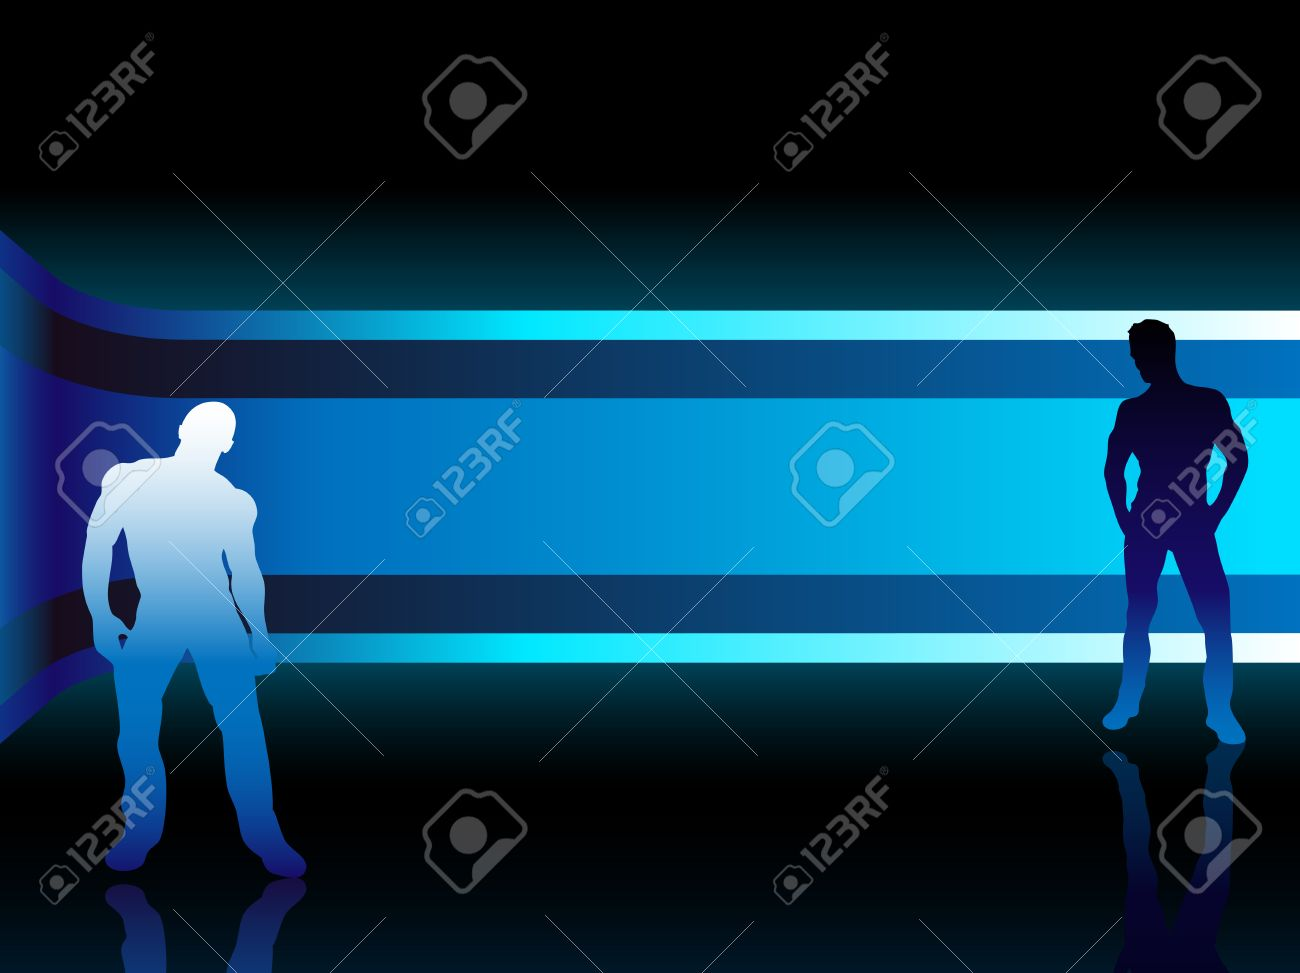 Sexy fashion boys in beautiful and colorful background. Editable Vector Image Stock Vector - 6342367